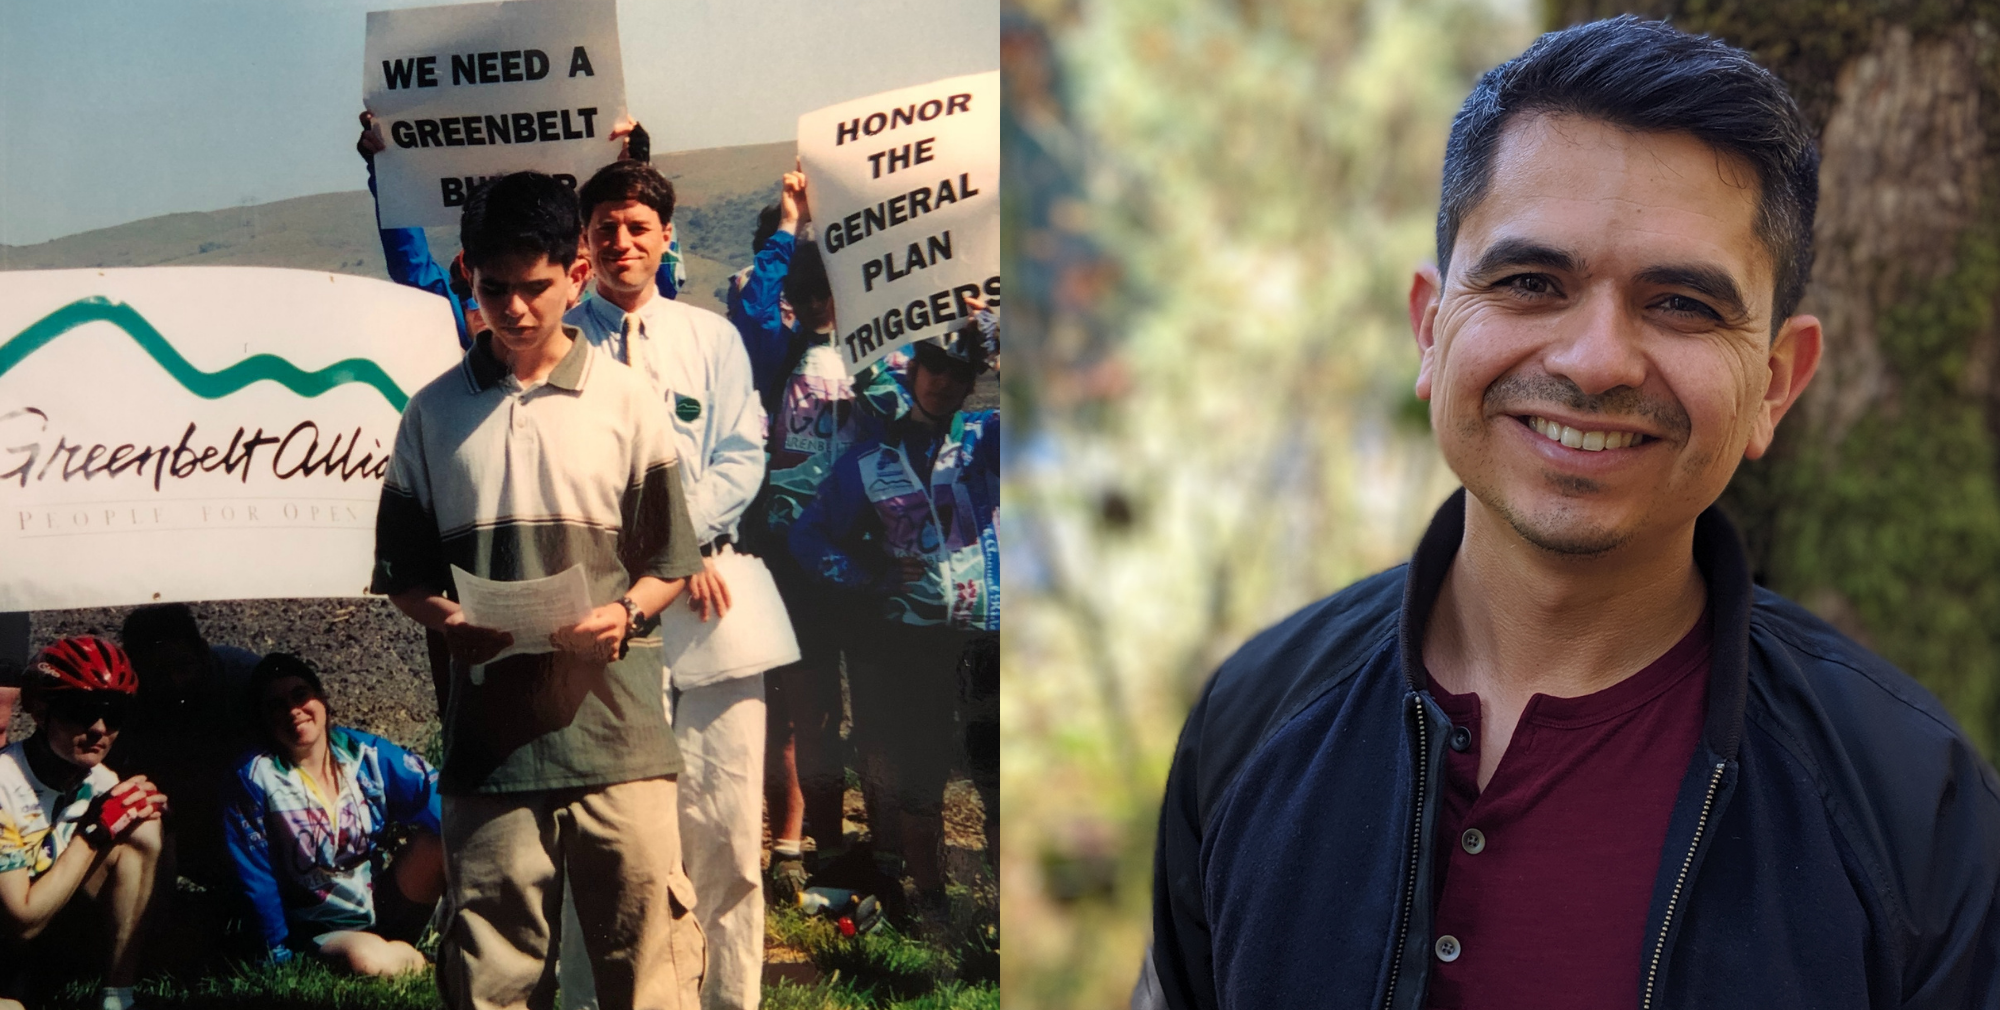 Photo of Nick Perry as a teen at Greenbelt Alliance press conference next to his current staff headshot